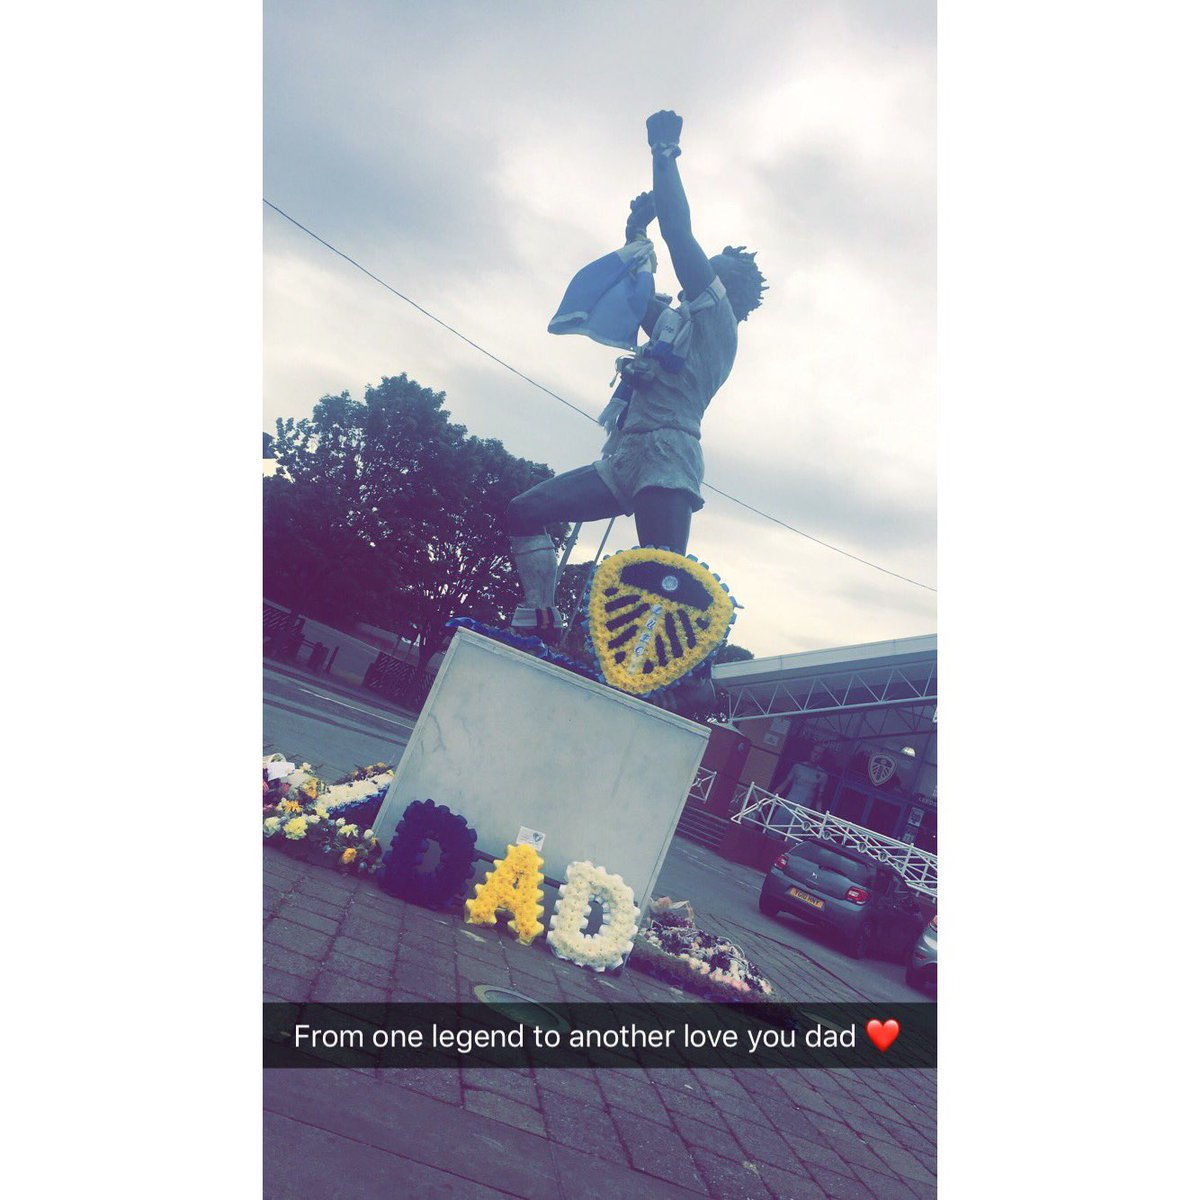 From one legend to another. My heros flowers are with his hero  #mot #leeds #billybremner #lufc #dad #badge<br>http://pic.twitter.com/mfyrxO7Lvw